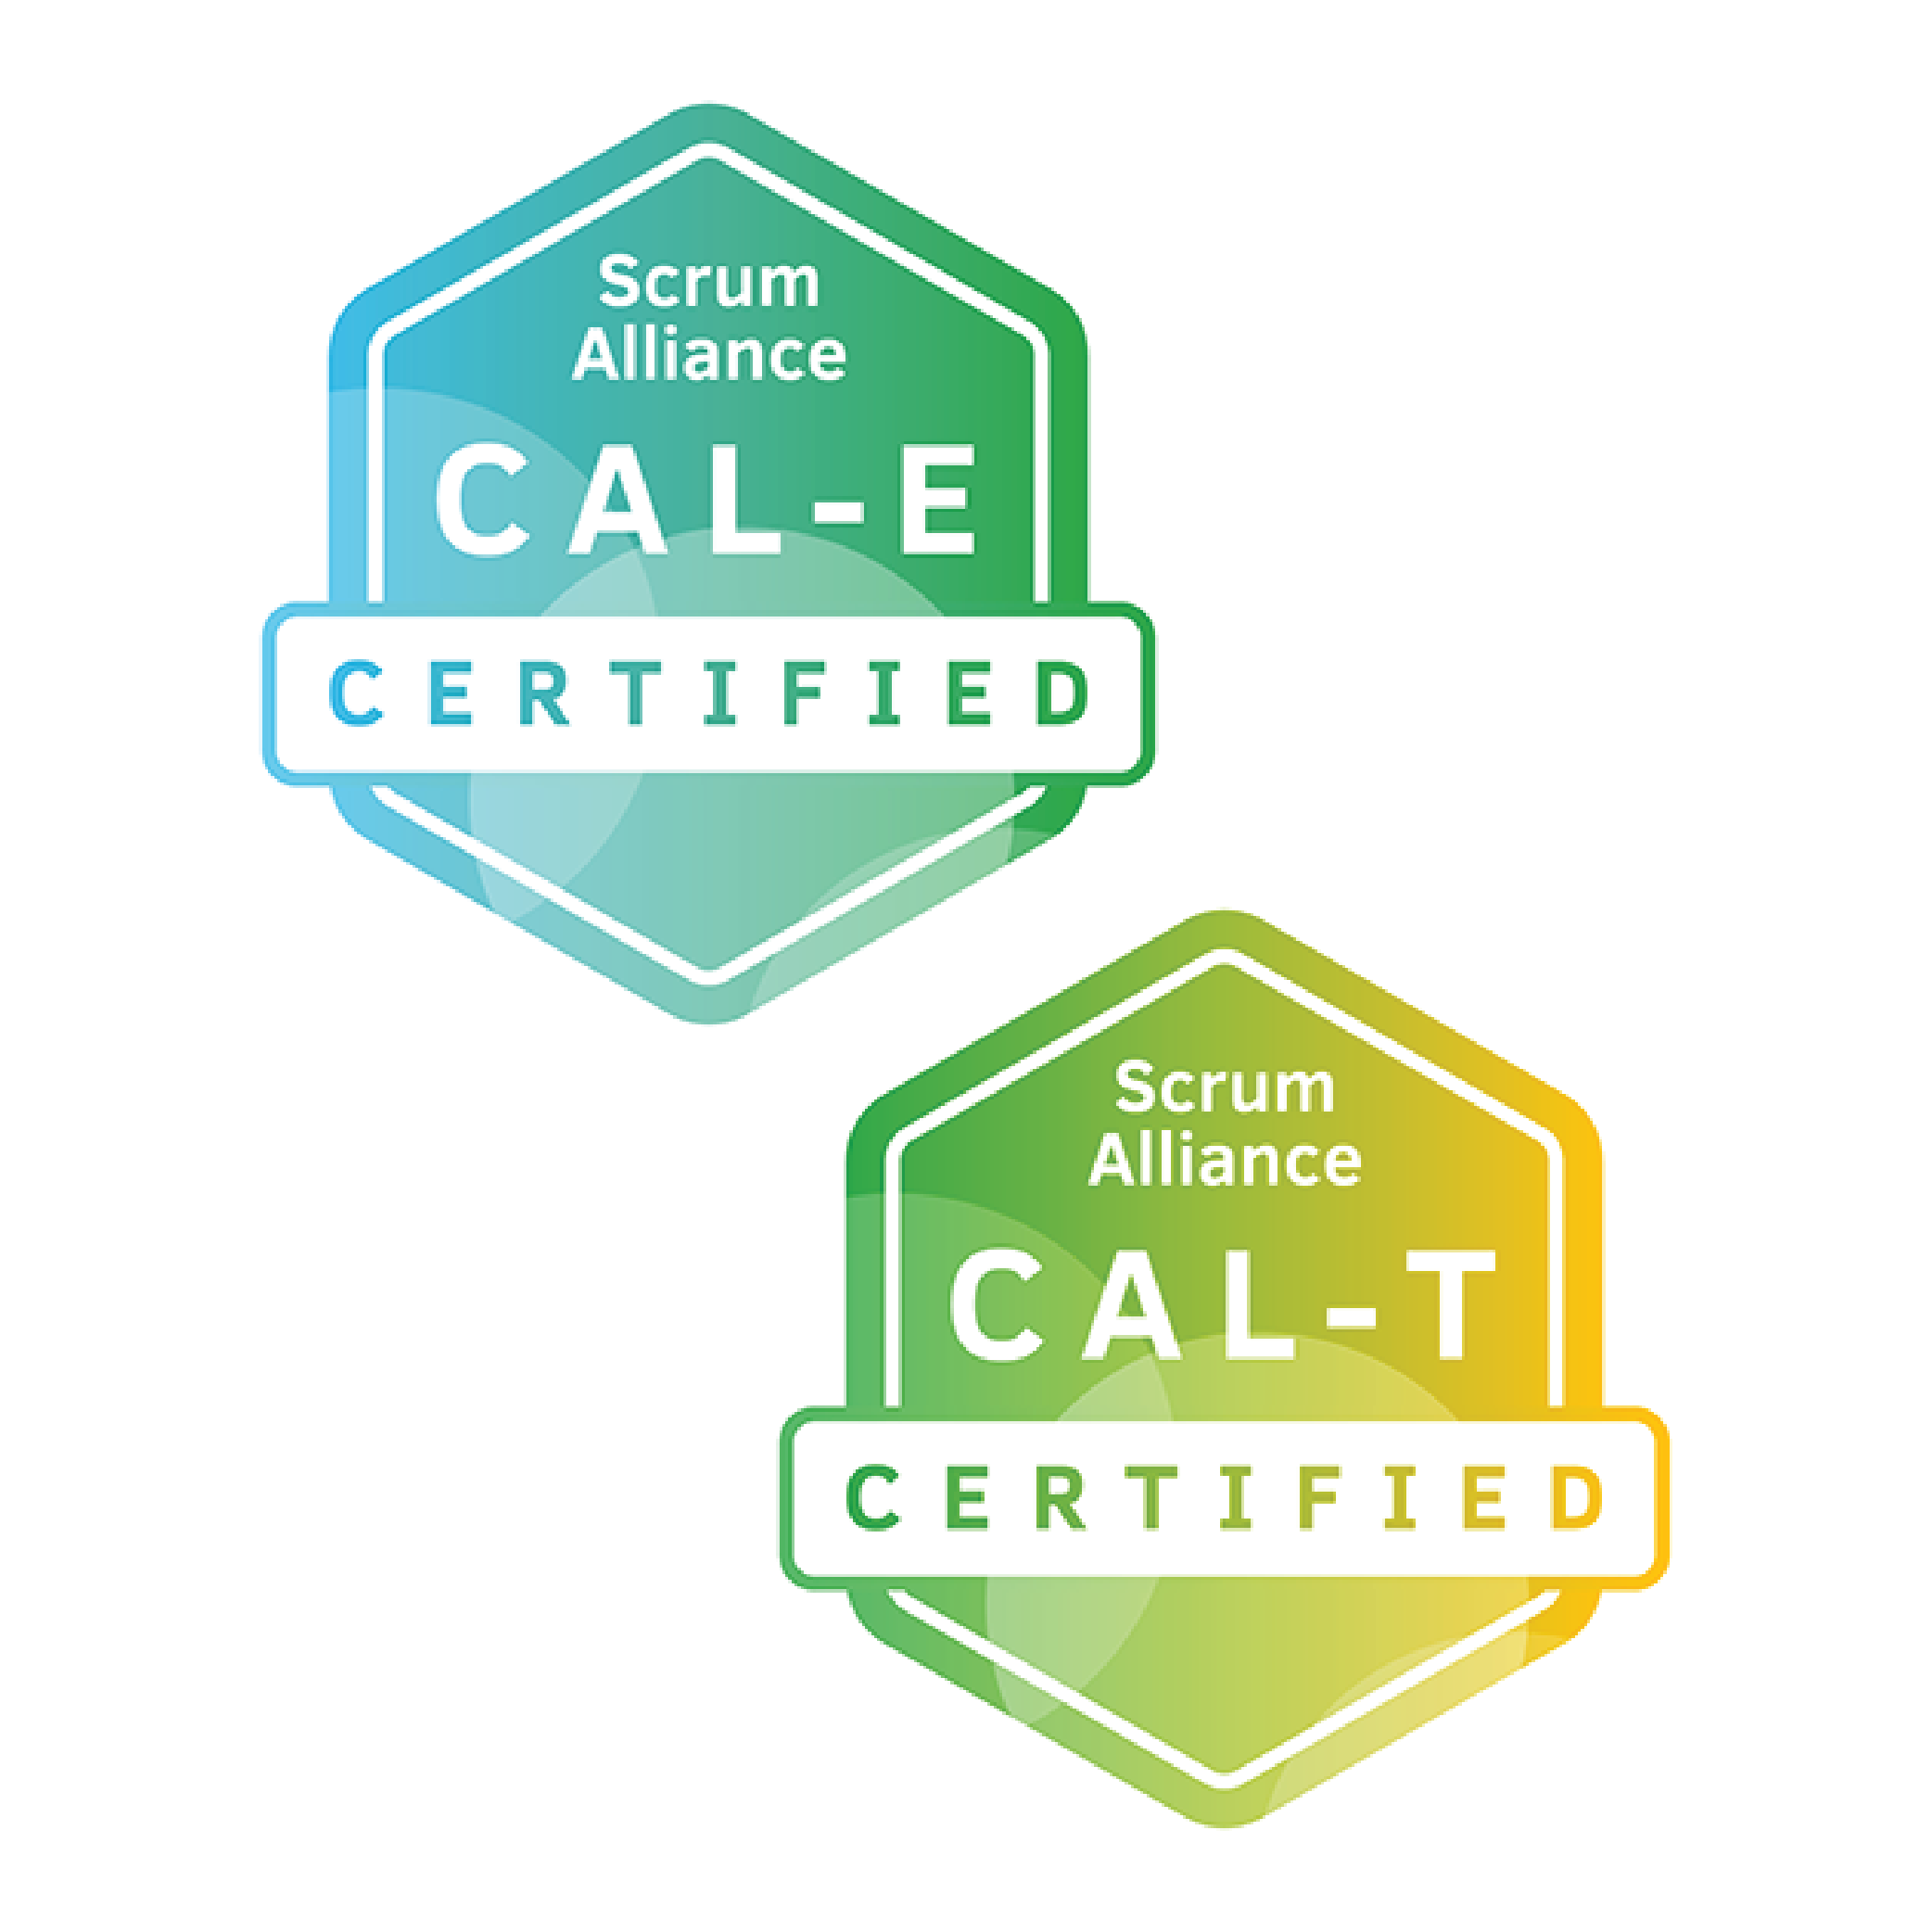 CALE%26T%20Badge%20Combo-01.png